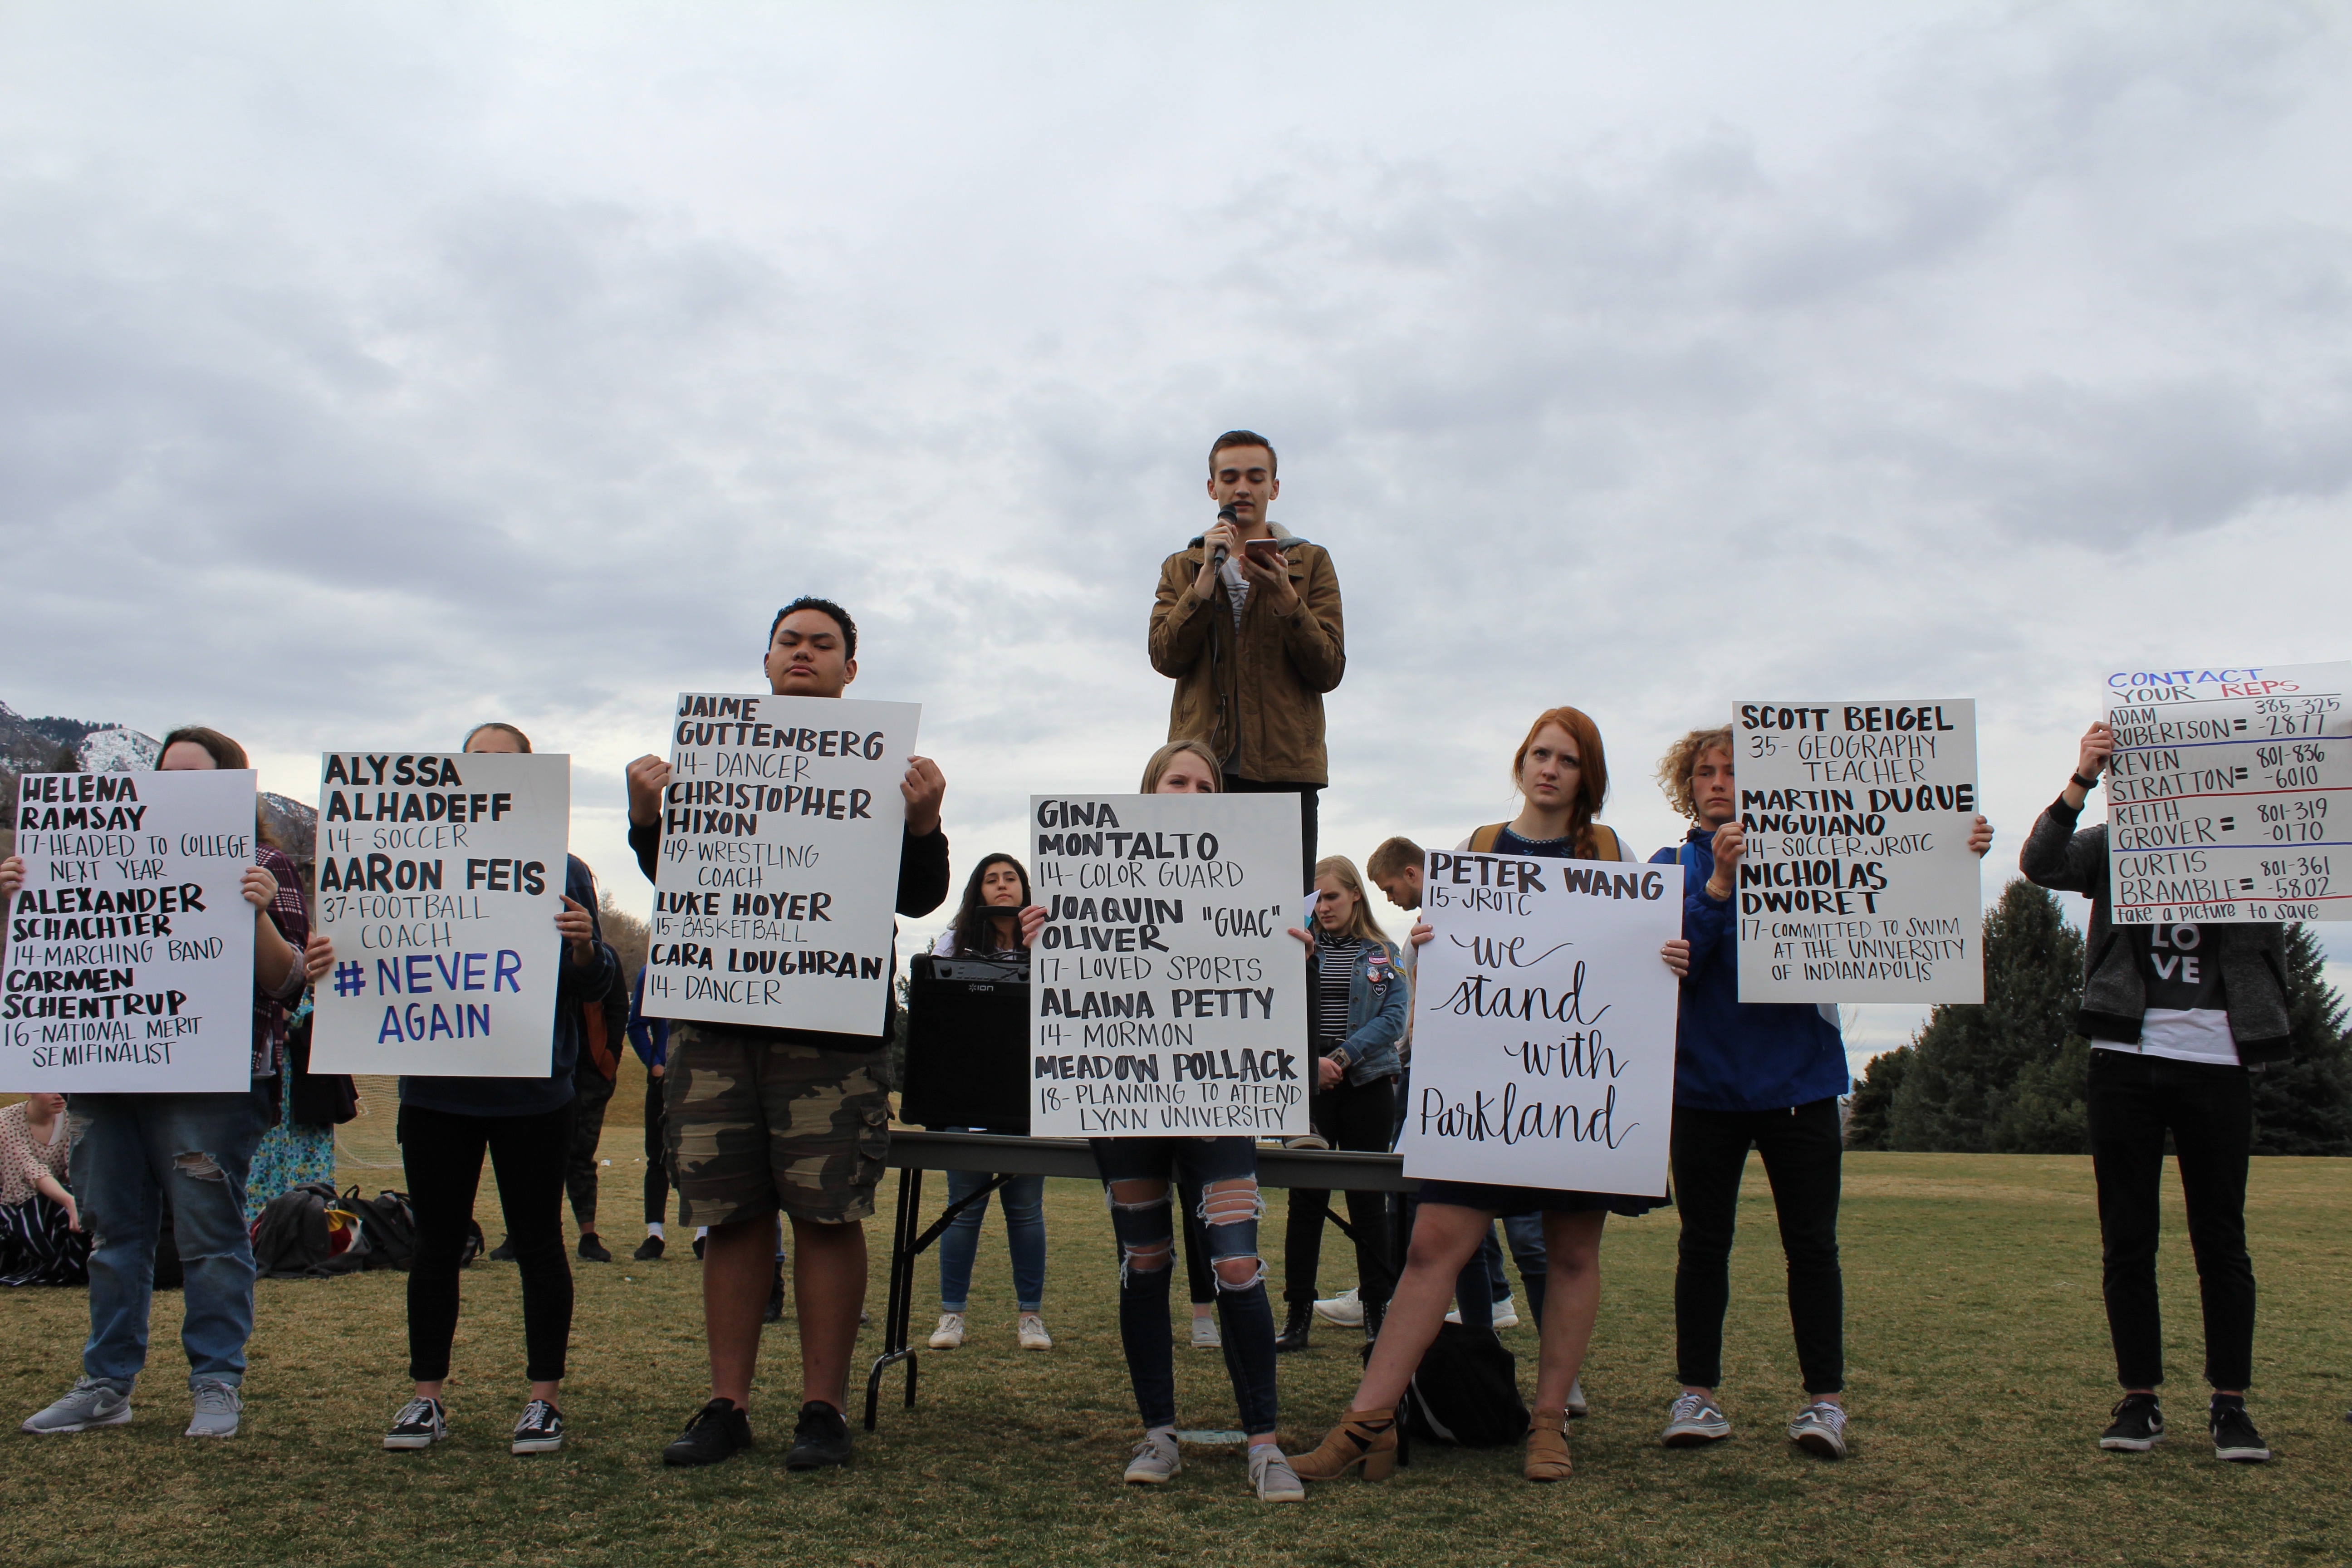 Timpview Students Walkout for a Serious Solution